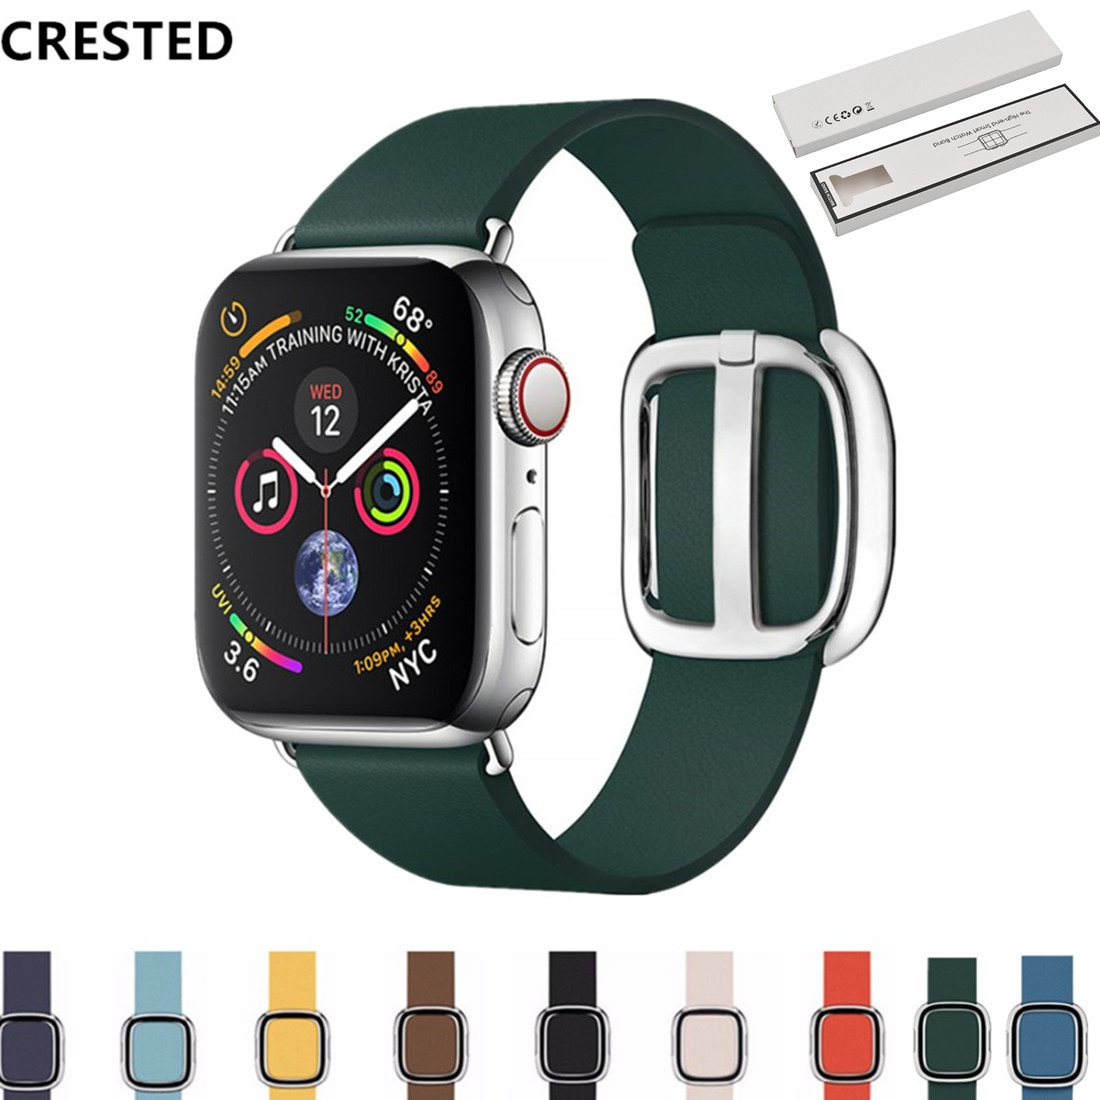 CRESTED strap For Apple Watch band apple watch 4 3 42mm/38mm iwatch band 44mm/40mm correa Modern bracelet watch AccessoriesCRESTED strap For Apple Watch band apple watch 4 3 42mm/38mm iwatch band 44mm/40mm correa Modern bracelet watch Accessories